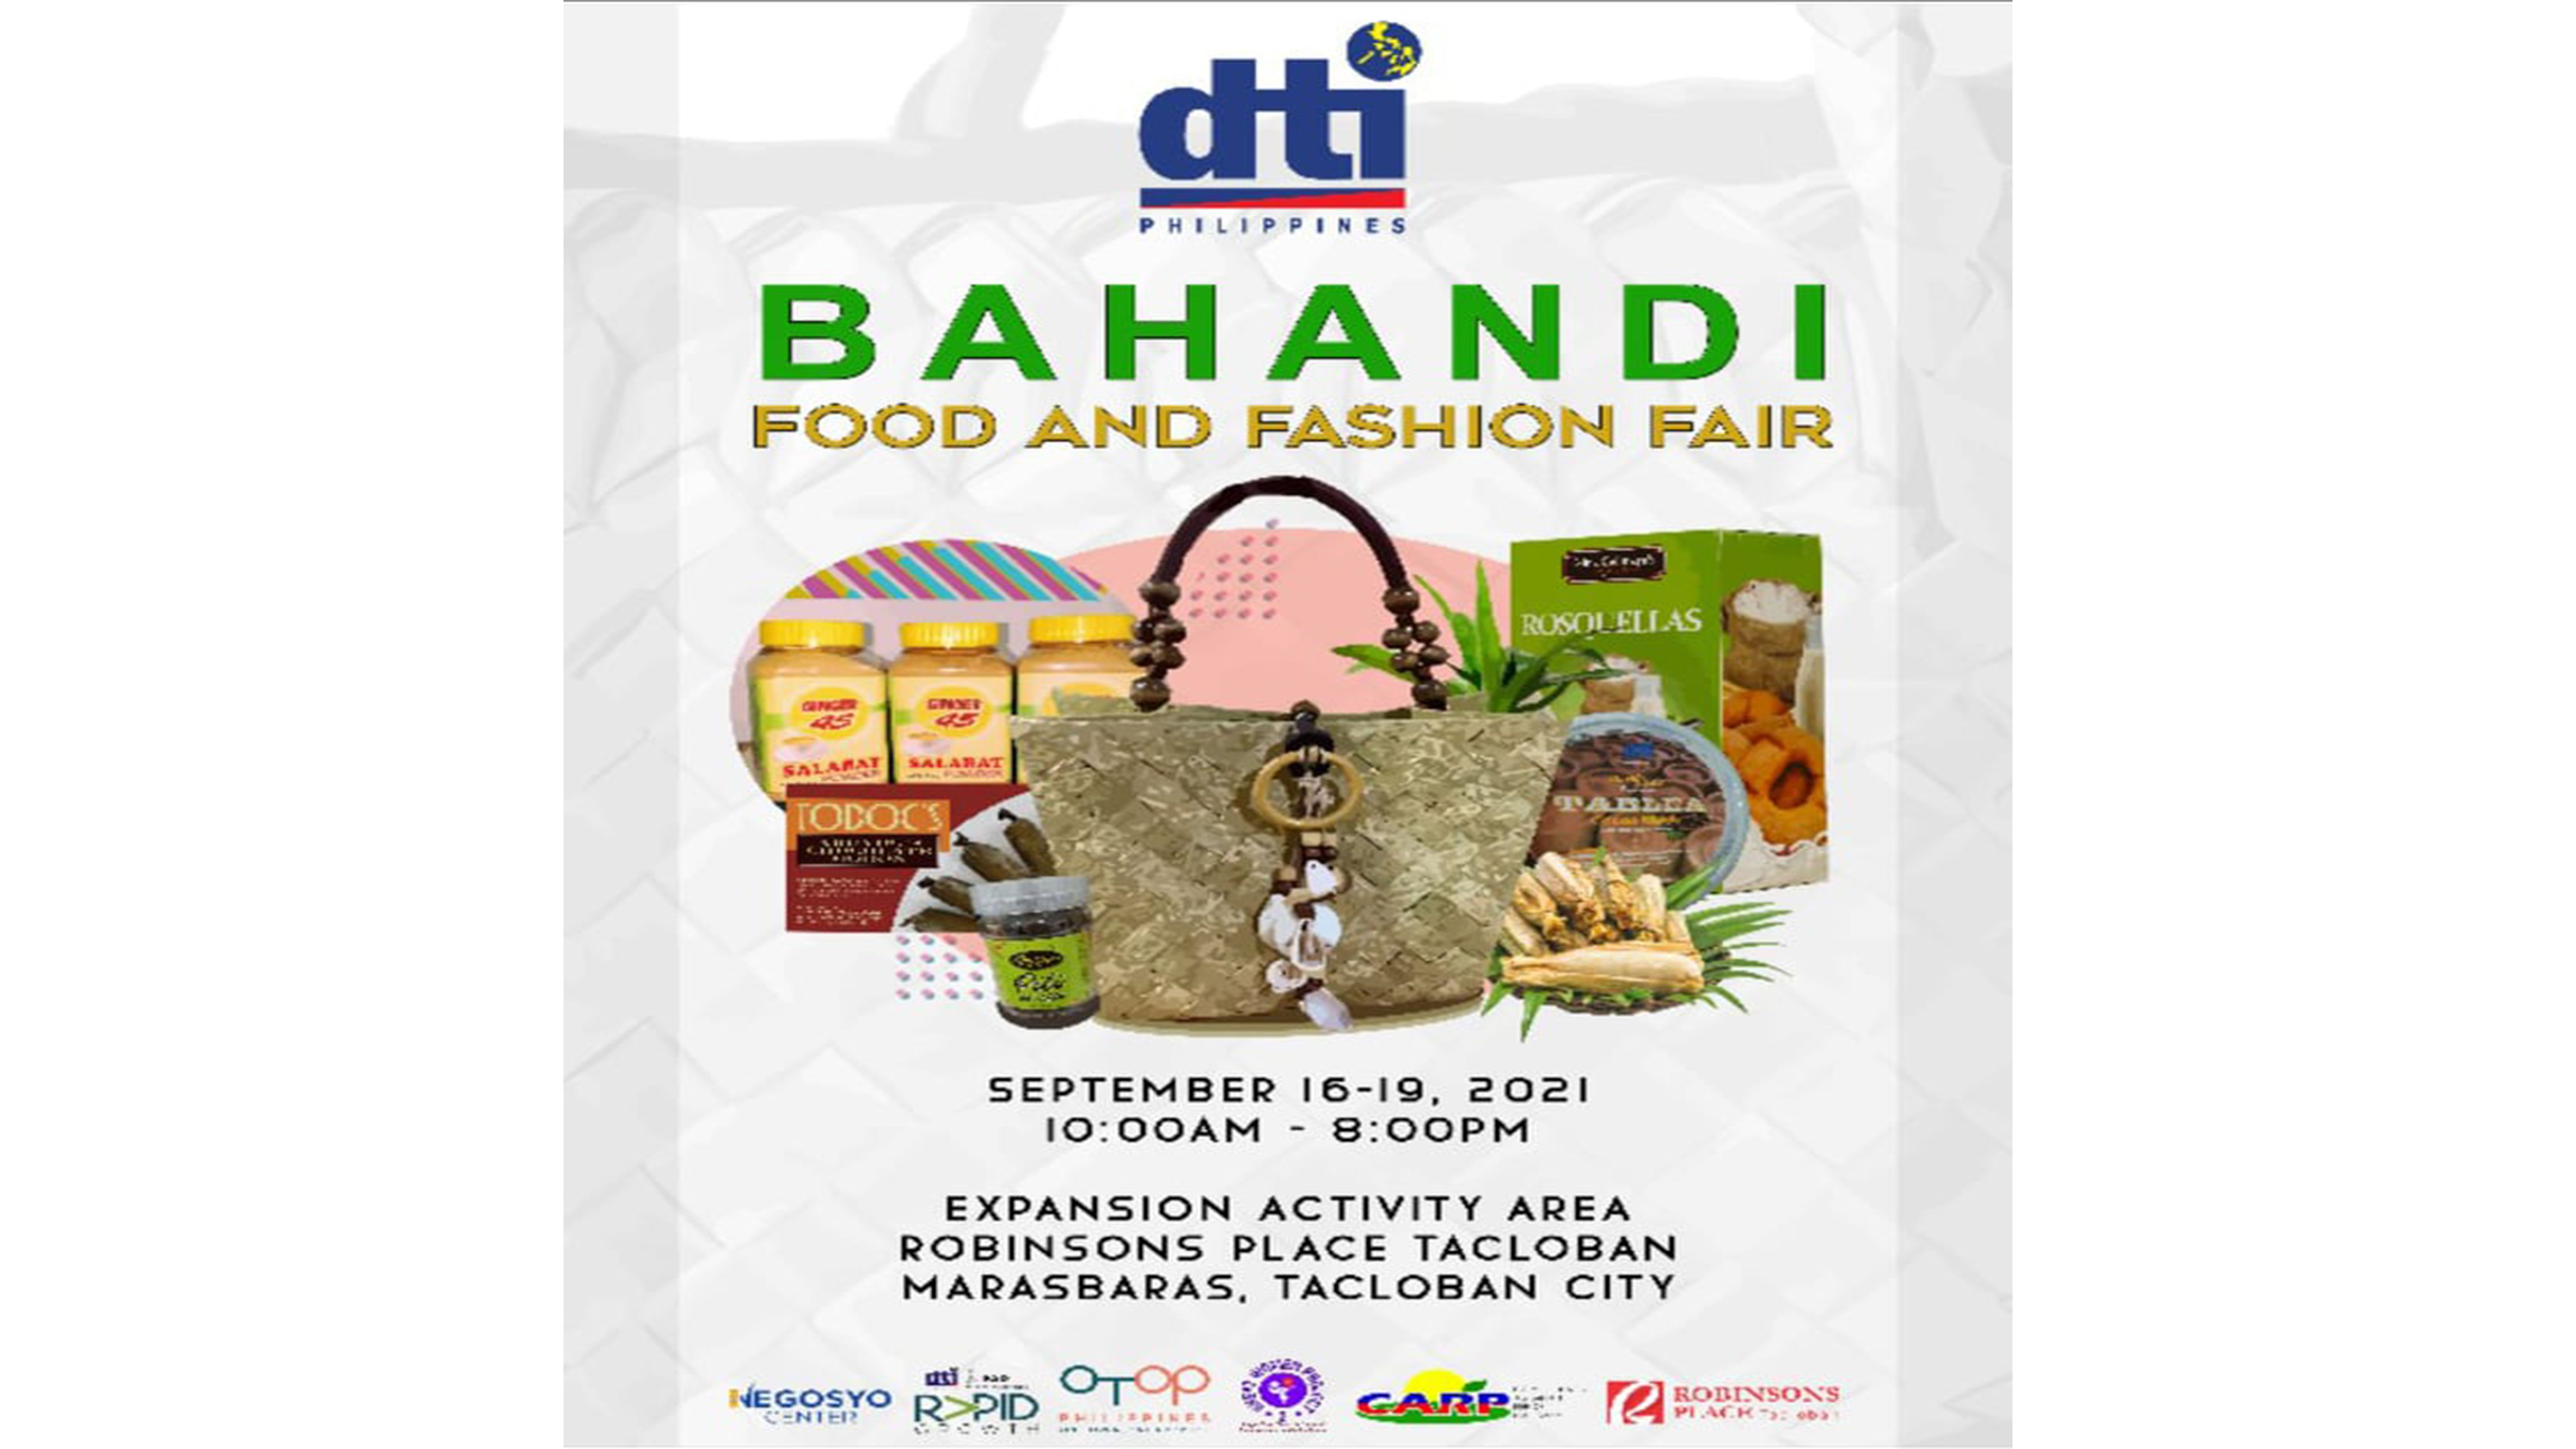 Bahandi Food and Fashion Fair comes back after pandemic -induced hiatus photo from Opinyon